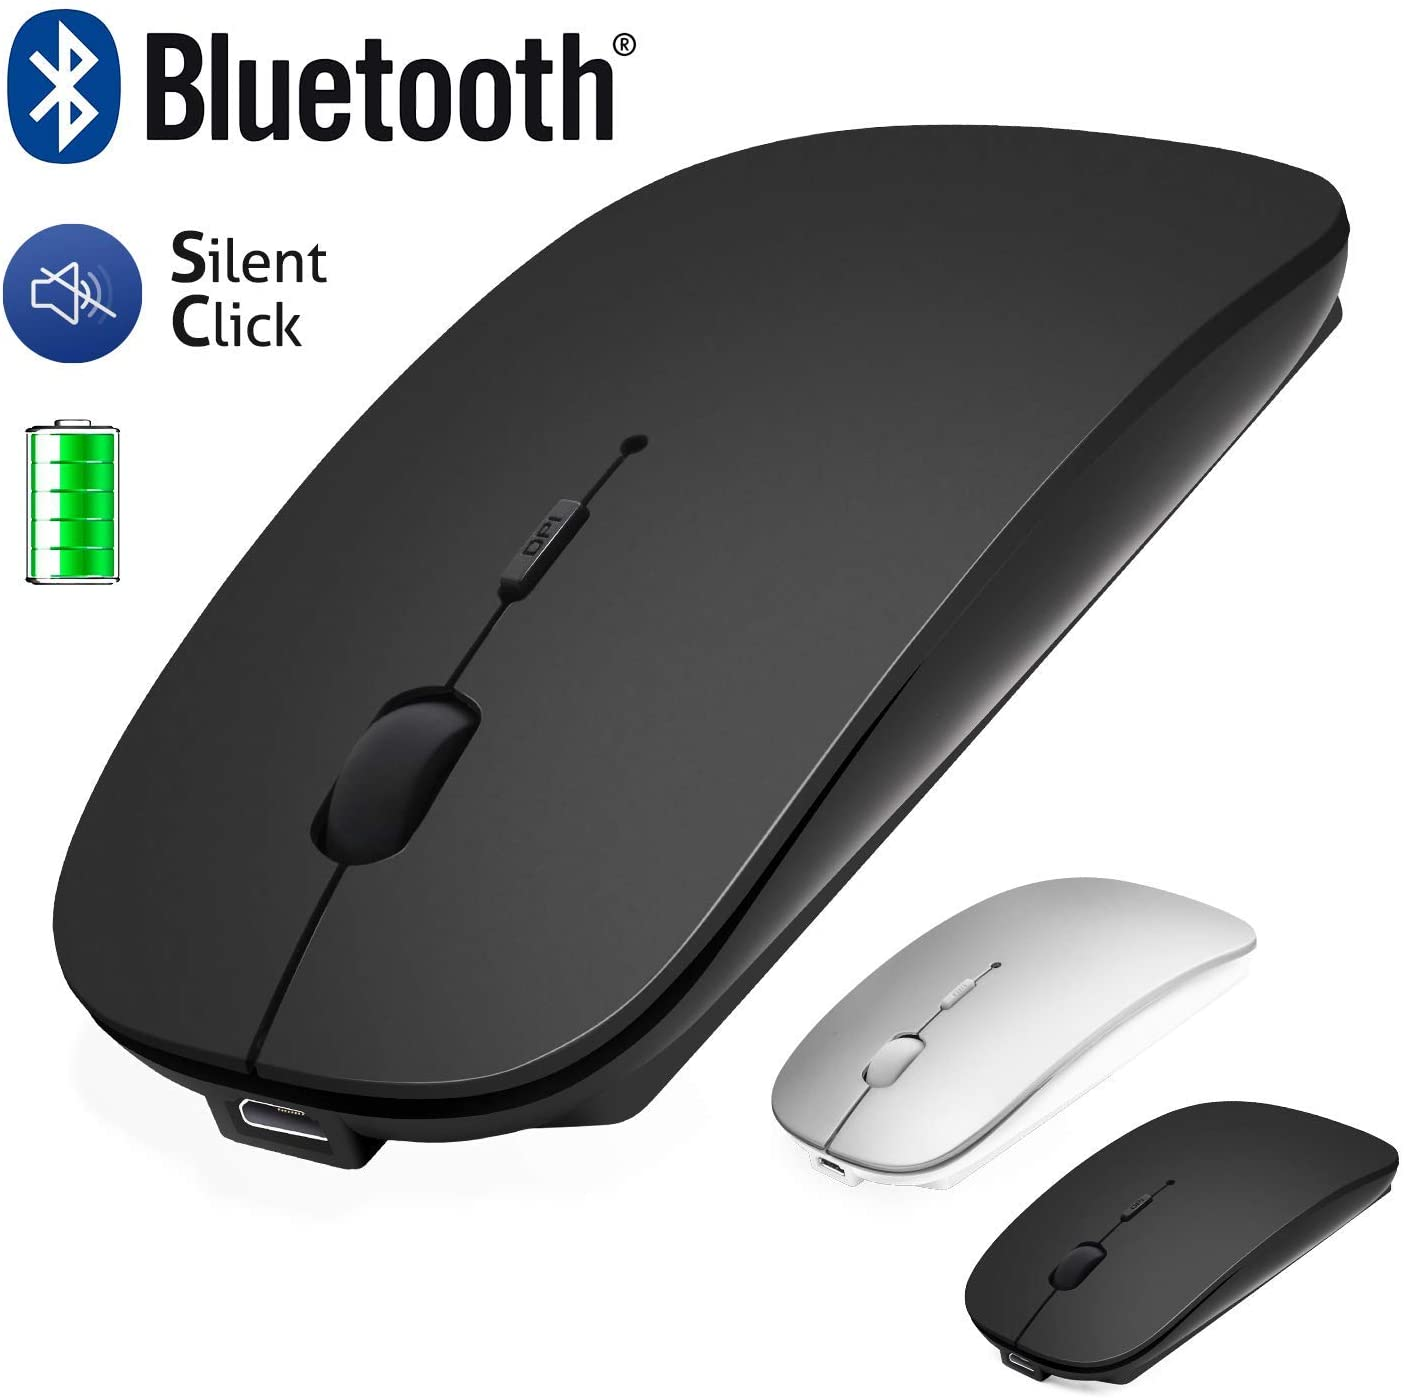 Ratón Bluetooth para Mac/iPad/iPhone (iOS13.1.2 y superiores) / Android PC/Ordenador, recargable sin ruido mini ratón inalámbrico para Windows/Linux/Mac, 3 DPI ajustable Bluetooth 4.0 + 2.4 G